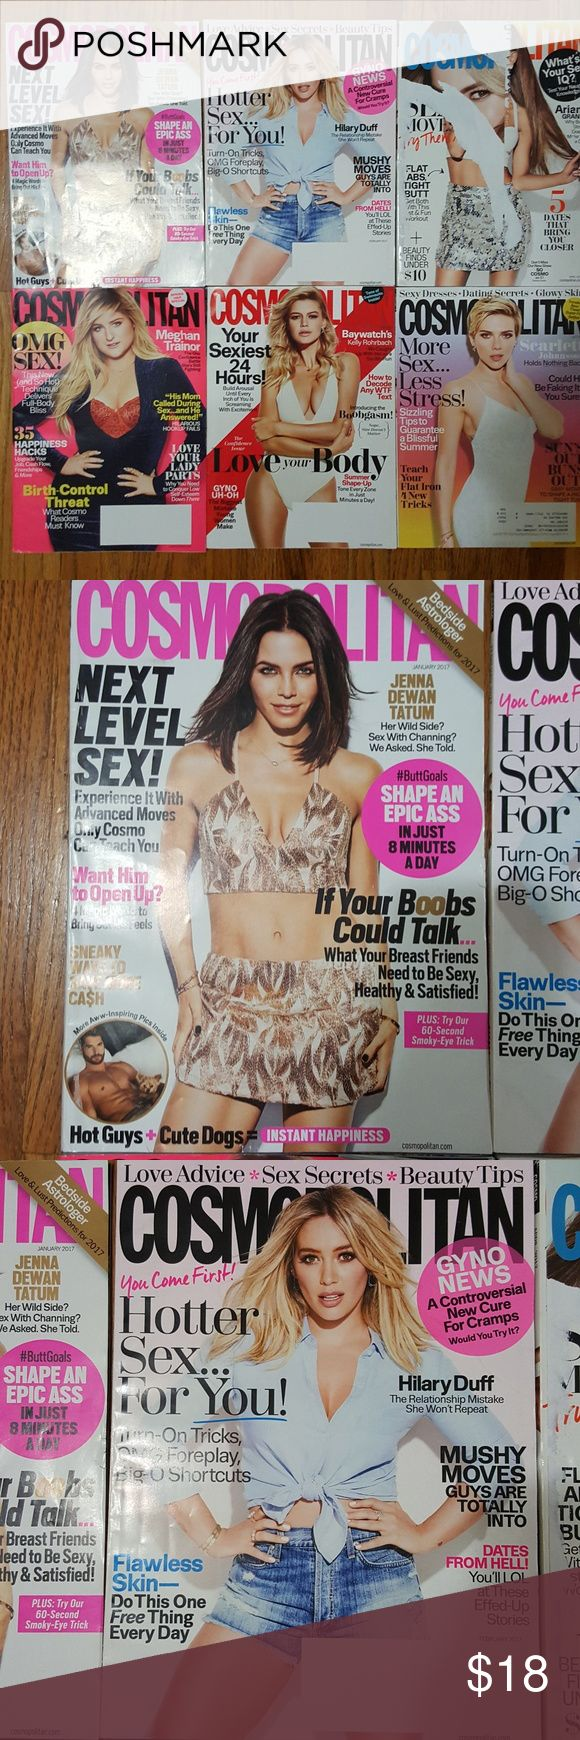 Set of 6 Cosmo Cosmopolitan Magazines 2017 Selling as a lot. Can't be bundle w/ other magazines/heavy items due to shipping weight limit. Can be bundle with lighter items like clothing from my closet. Most are new/unread & great condition. Outside might be torn from shipping or storing. Pages are all there but might have few missing perfume sample pages. Last pic show all Cosmo I own as of 2/2018. Month:June,May,April,Feb,Jan2017 Celebrity cover:Jenna Dewan Tatum,Hilary Duff,Meghan…